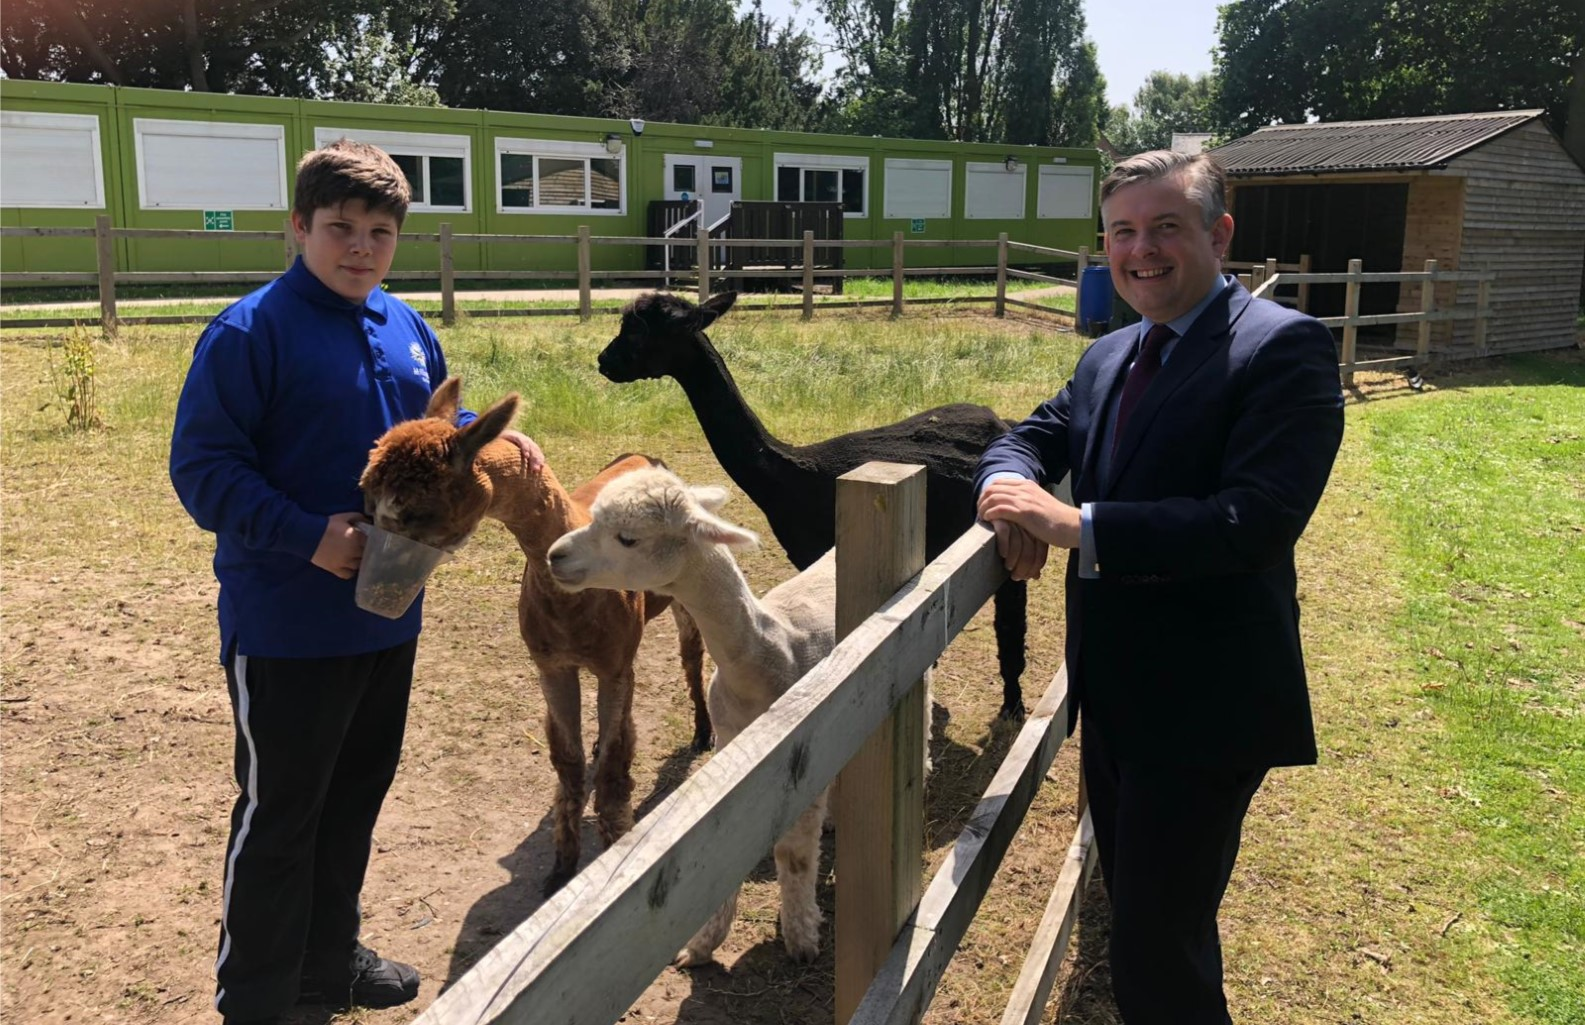 Jon visits Millgate School as part of the ''Send My Friend to School'' campaign to ensure quality education for all children - Friday June 28 2019